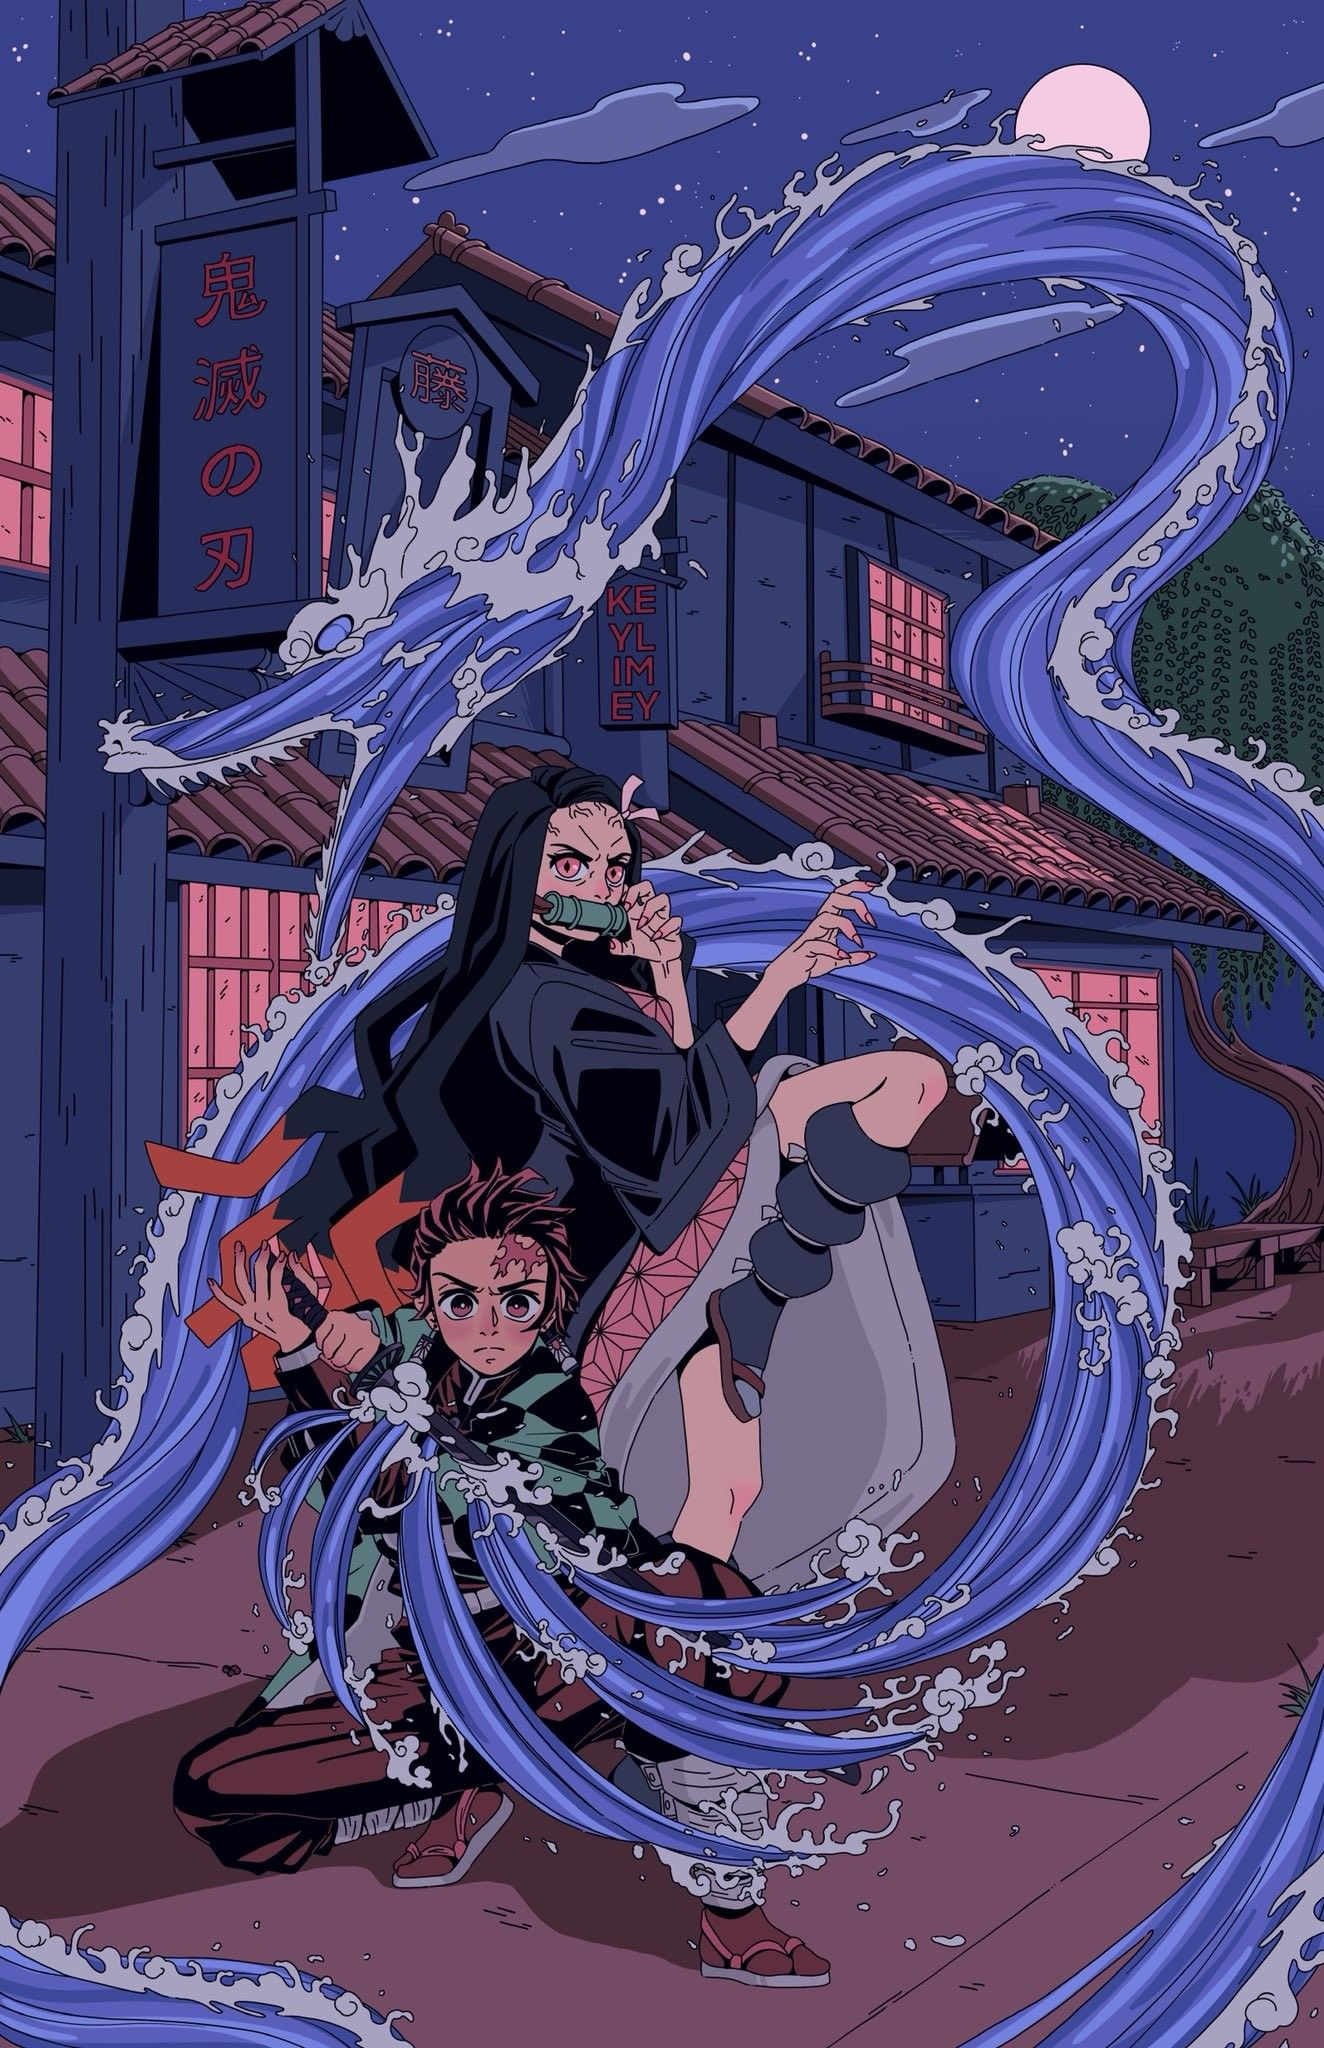 Tanjiro Kamado And Nezuko Kamado Oni Wallpaper Anime Wall Art Anime Anime Wallpaper